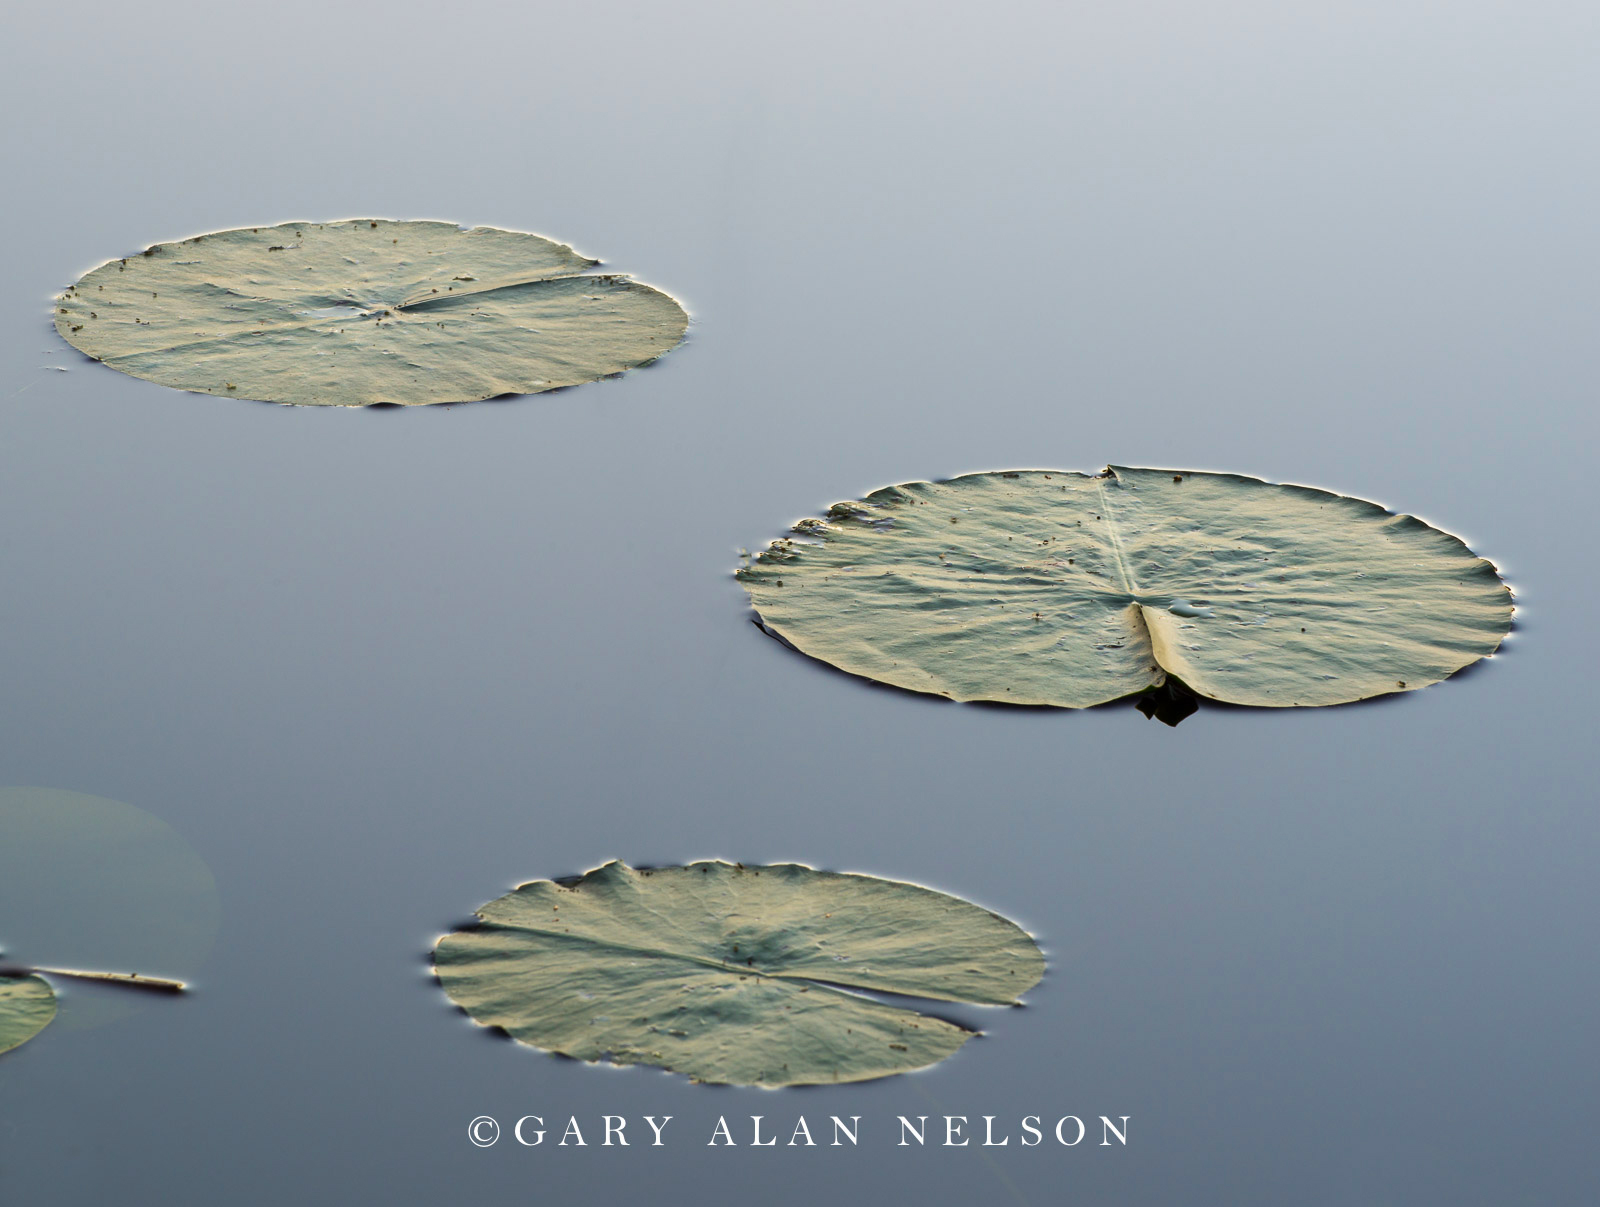 Allemansratt park, bulrushes, lily pads pads, photo